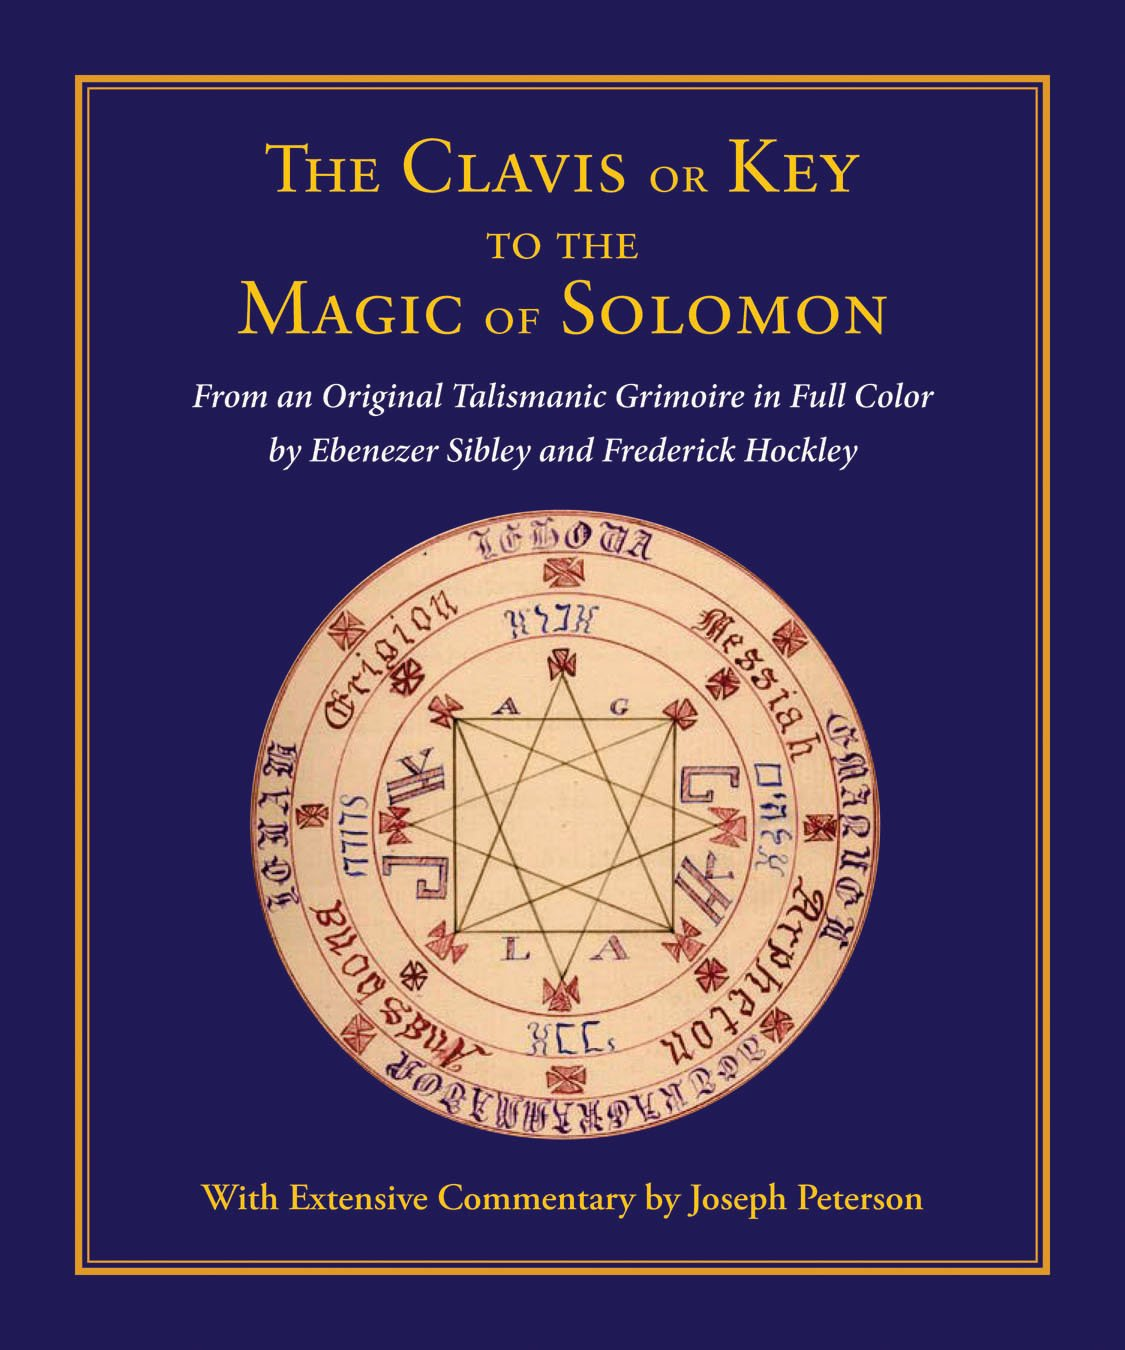 Tell me about the key or keys of Solomon. And is there anyone who can apply these keys